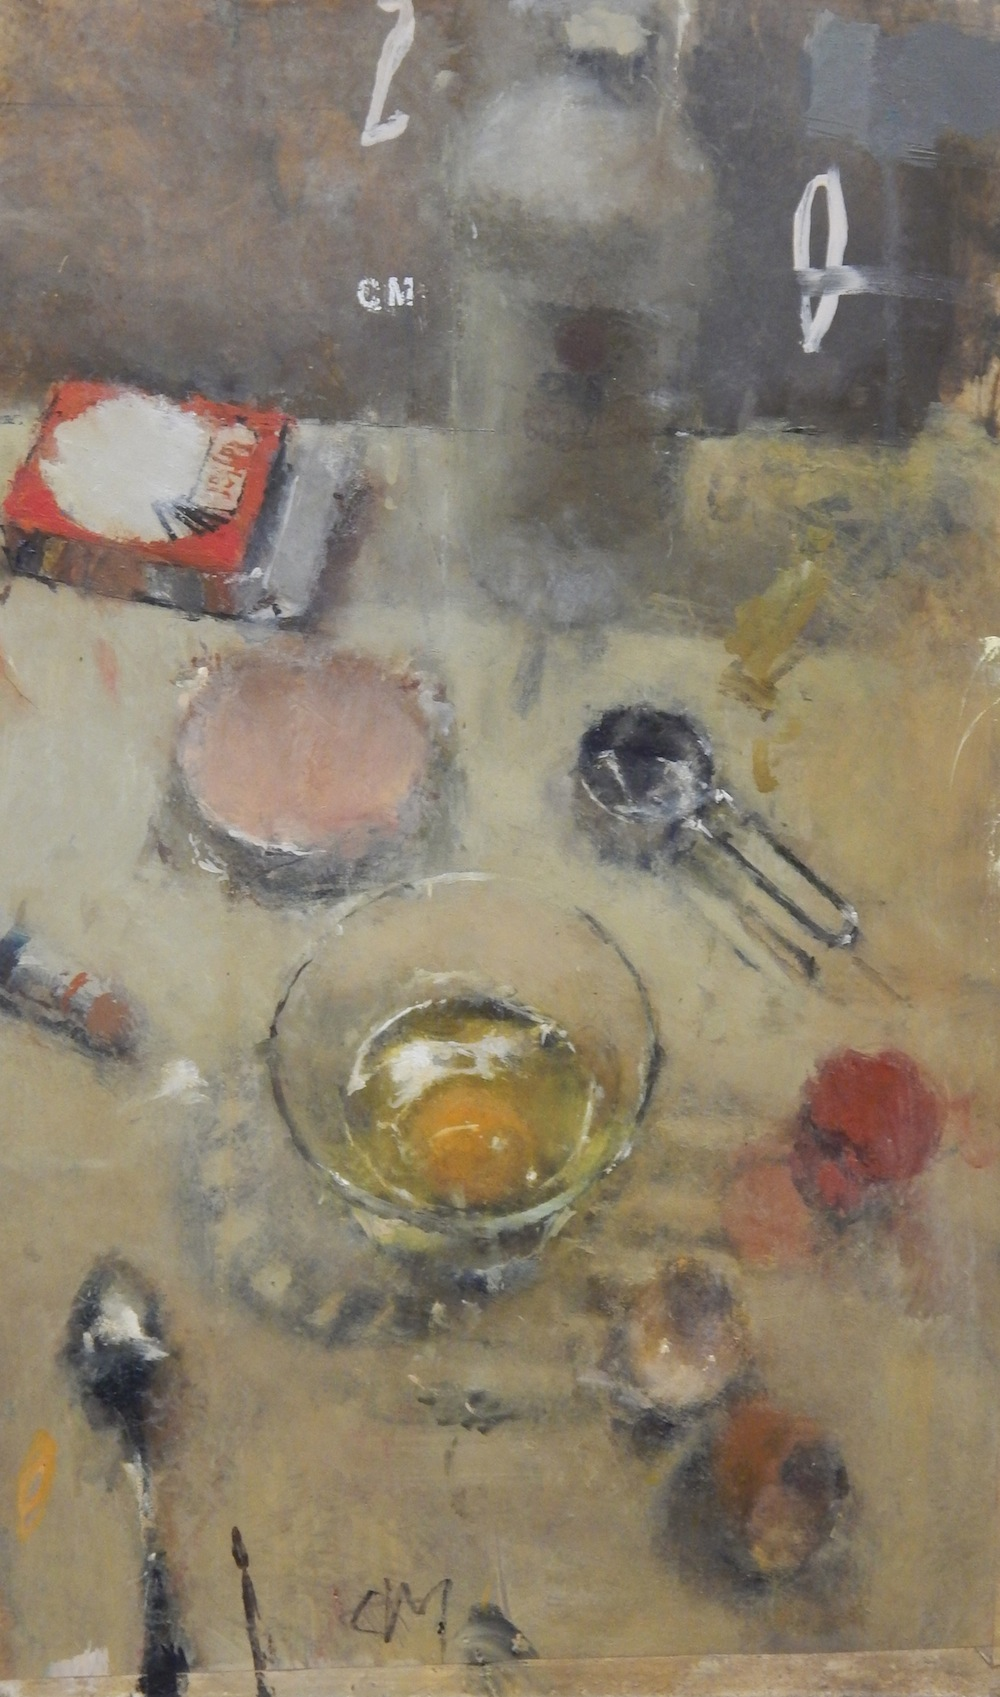 Still Life with Egg, Pork Roll and Rubbing Alcohol